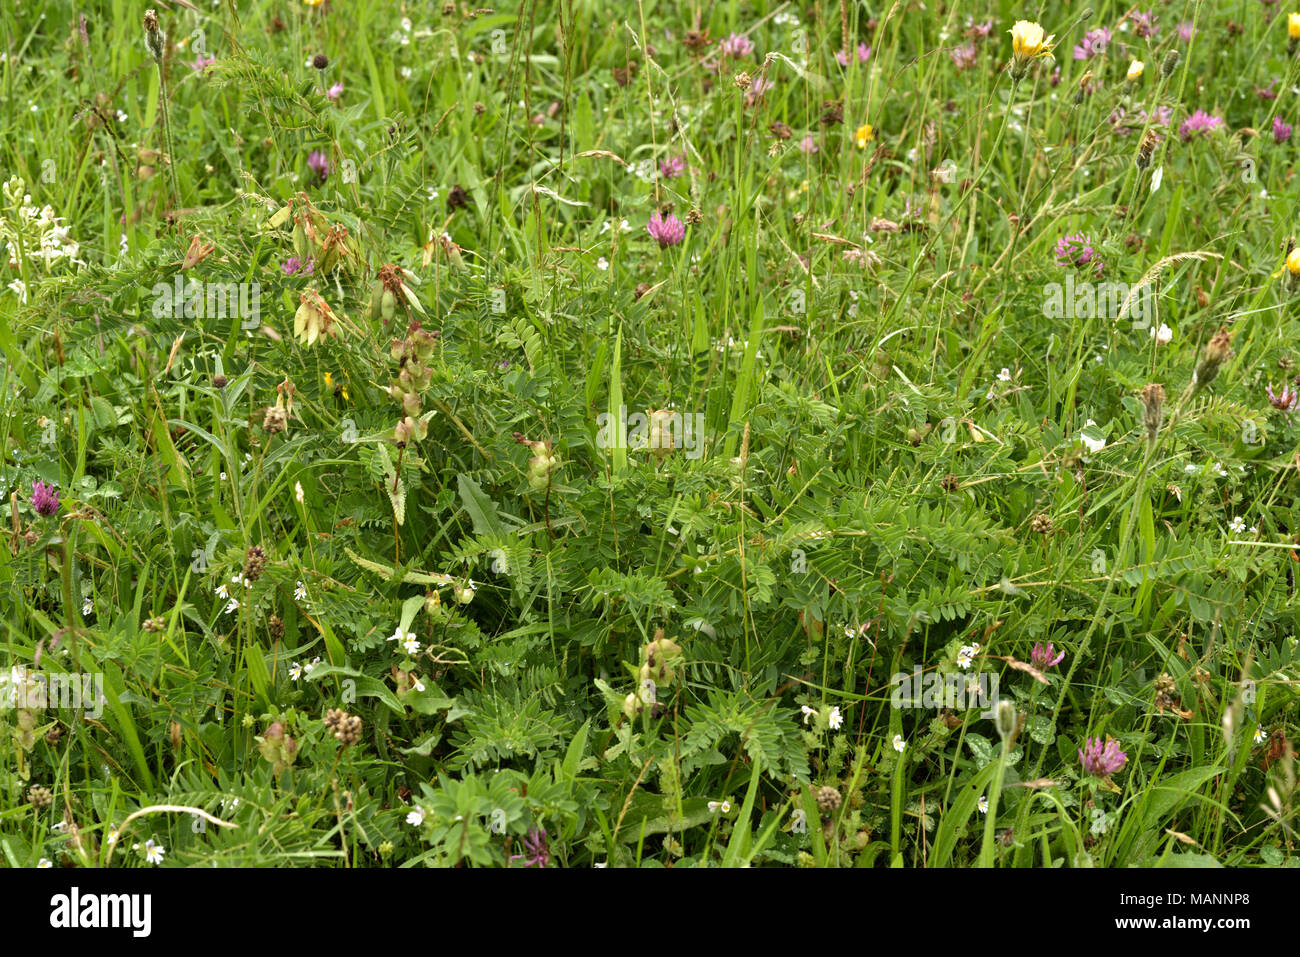 Wood Bitter-vetch, Vicia orobus fruiting in a Meadow - Stock Image